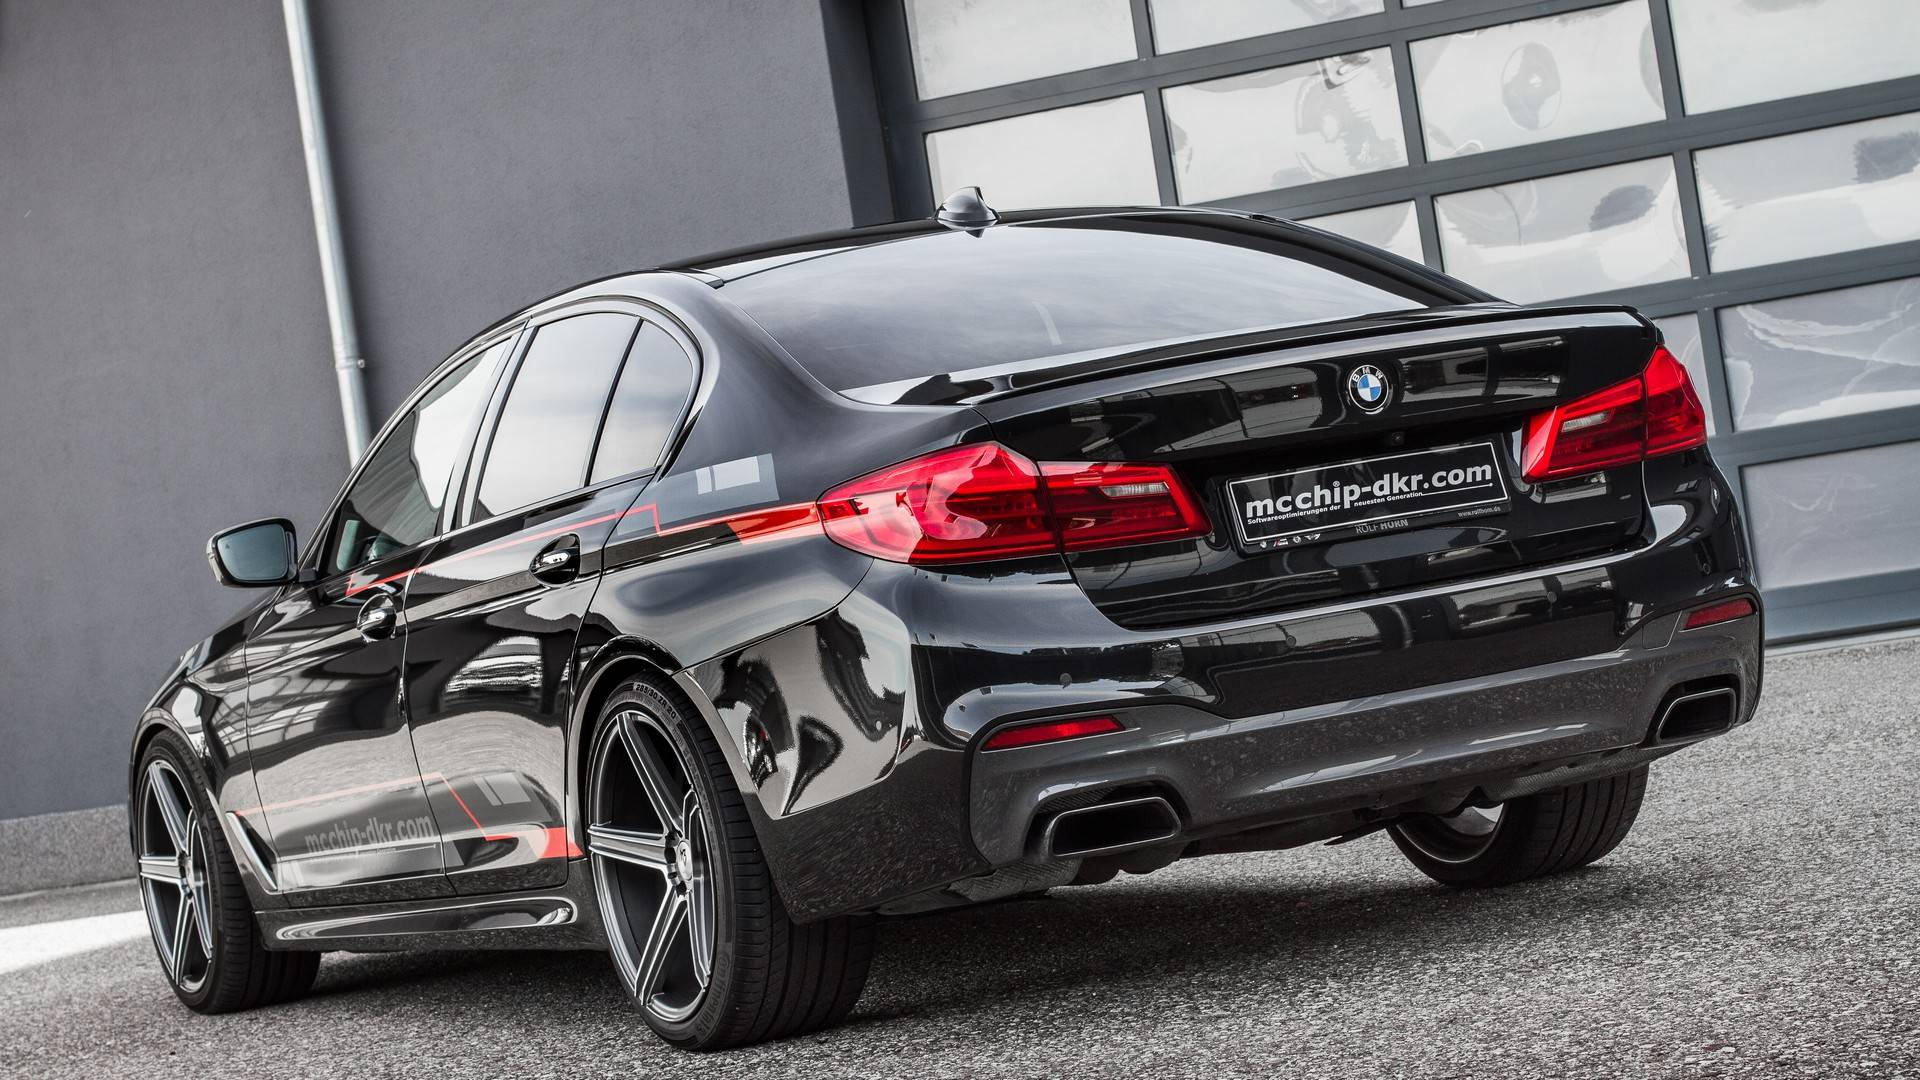 BMW_M550d_xDrive_by mcchip-dkr_01